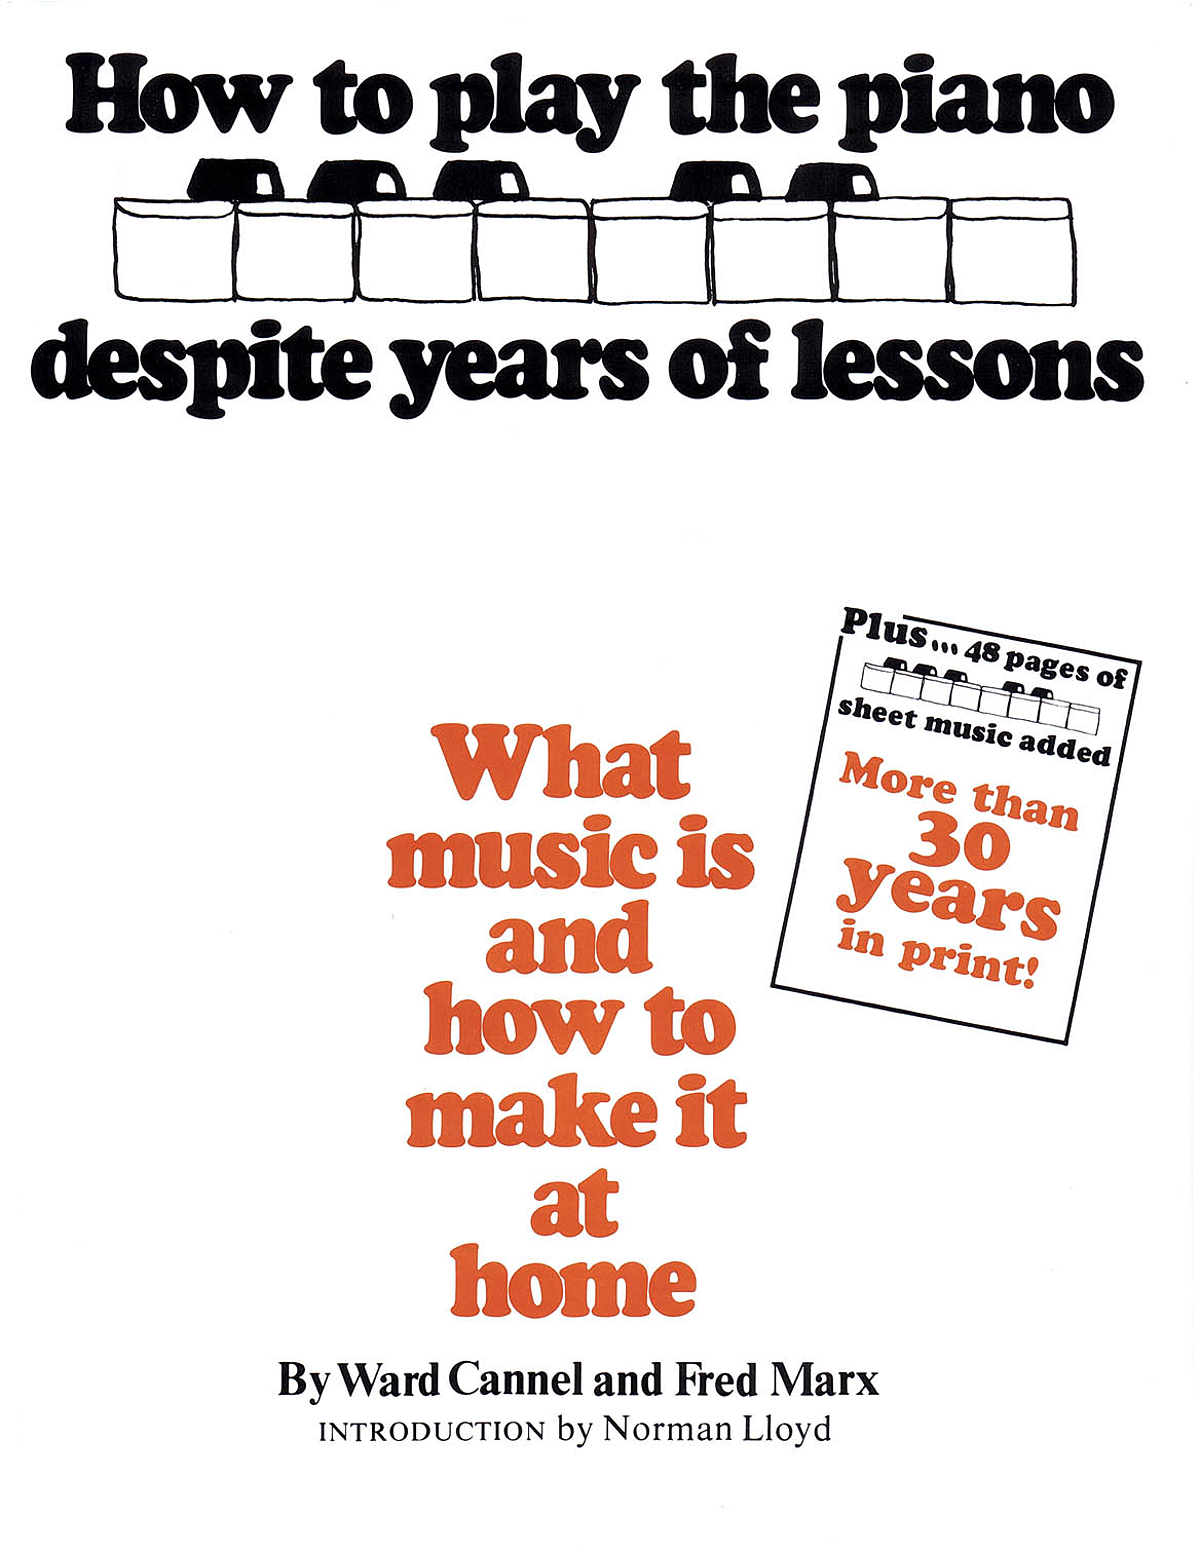 Ward Cannel, Fred Marx - How to Play Piano Despite Years of Lessons: What Music Is and How to Make It at Home